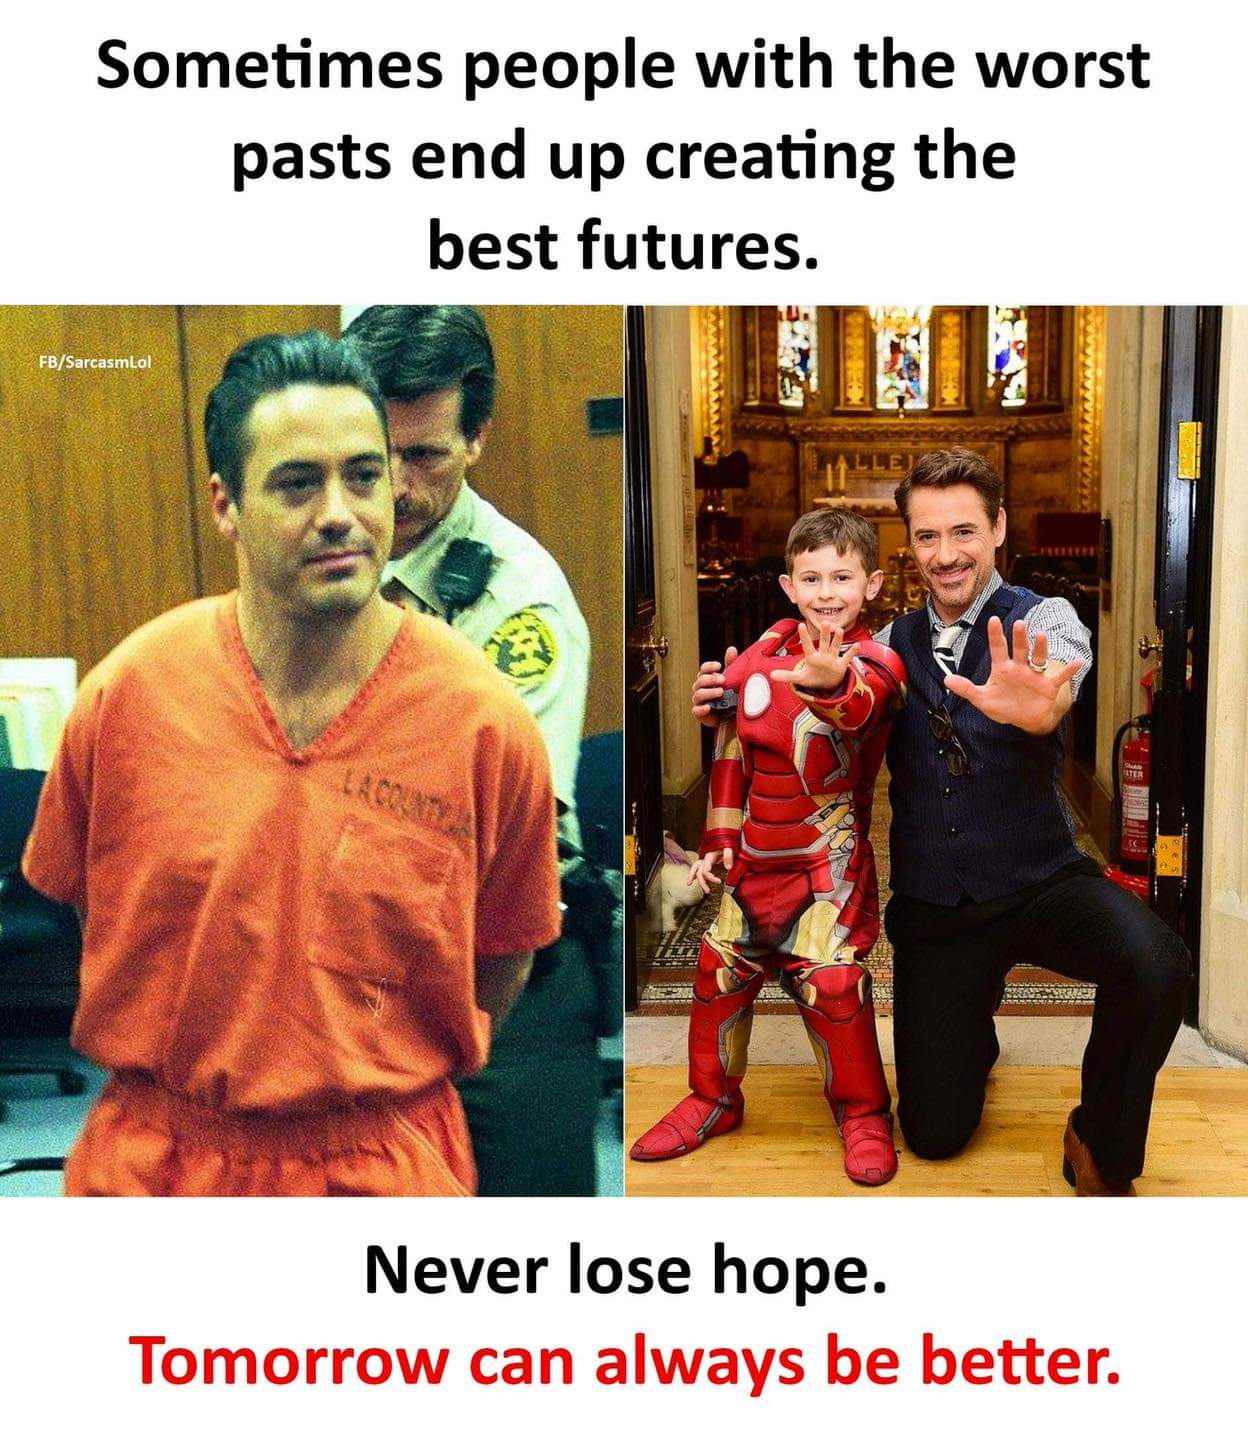 Sometimes people with the worst pasts end up creating the best futures. . r n .u. 1,. P w m ' Never lose hope. https://inspirational.ly